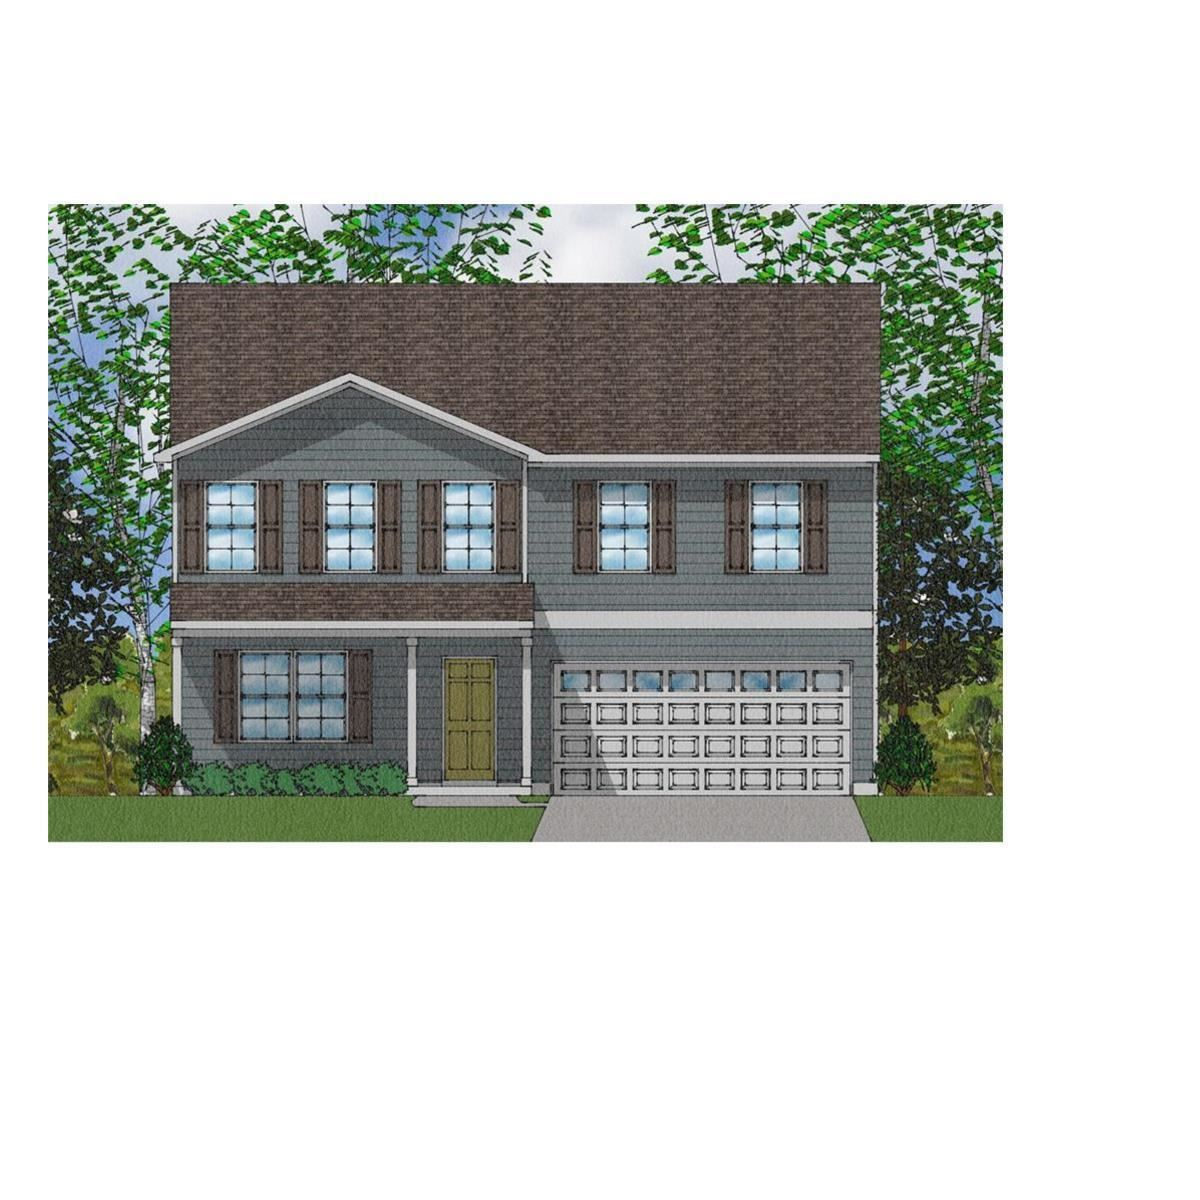 Photo for 4582 Parsons Mill Drive, Castle Hayne, NC 28429 (MLS # 100263635)